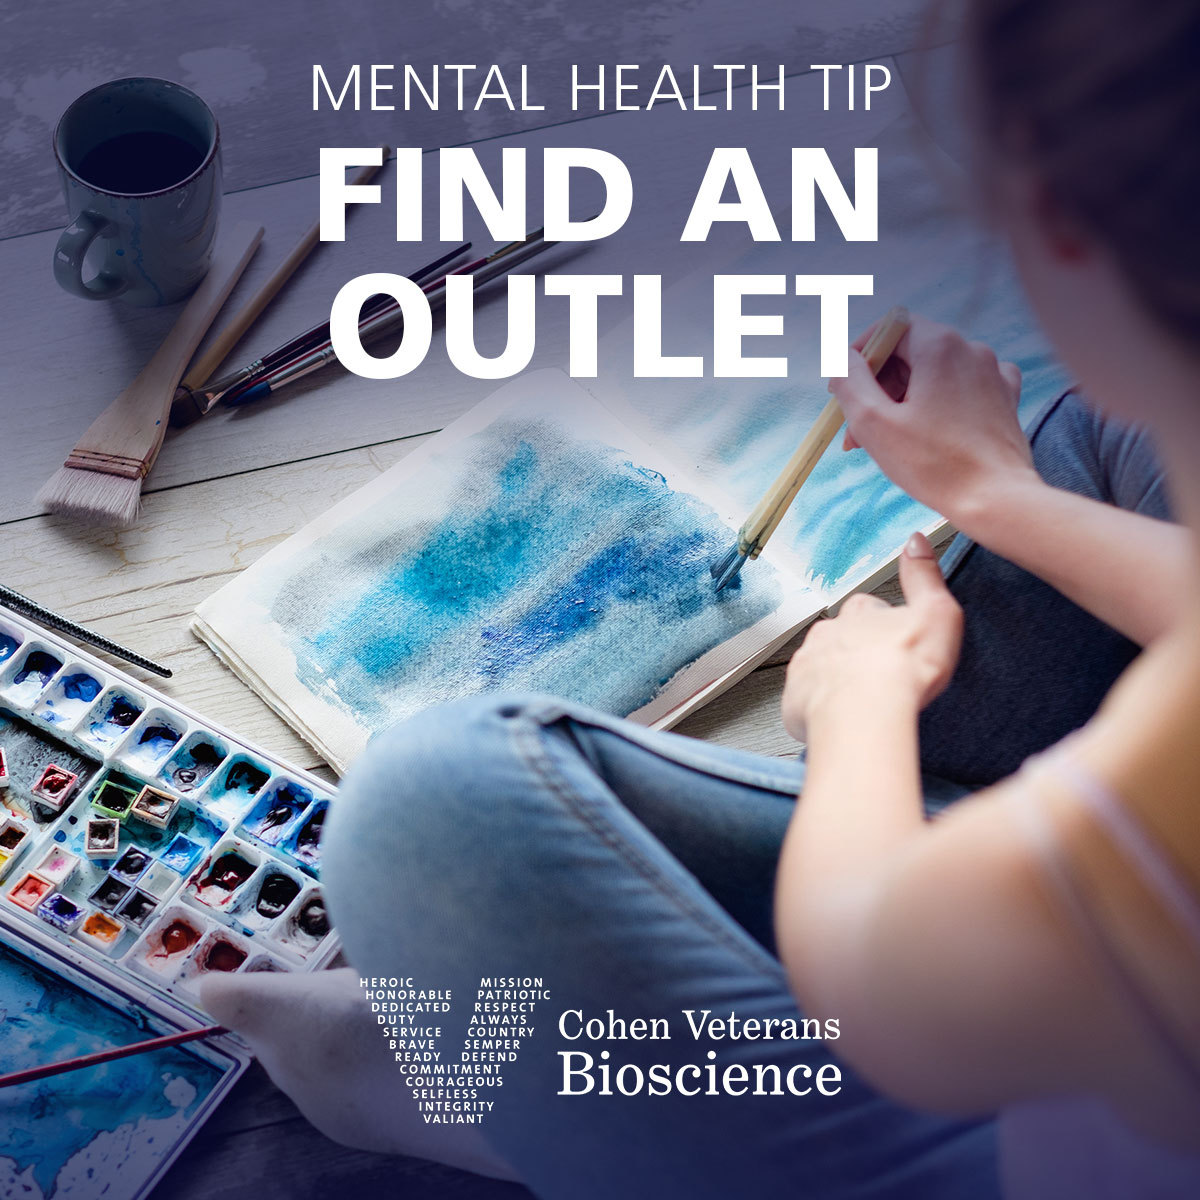 Mental Health Tip: Find an Outlet